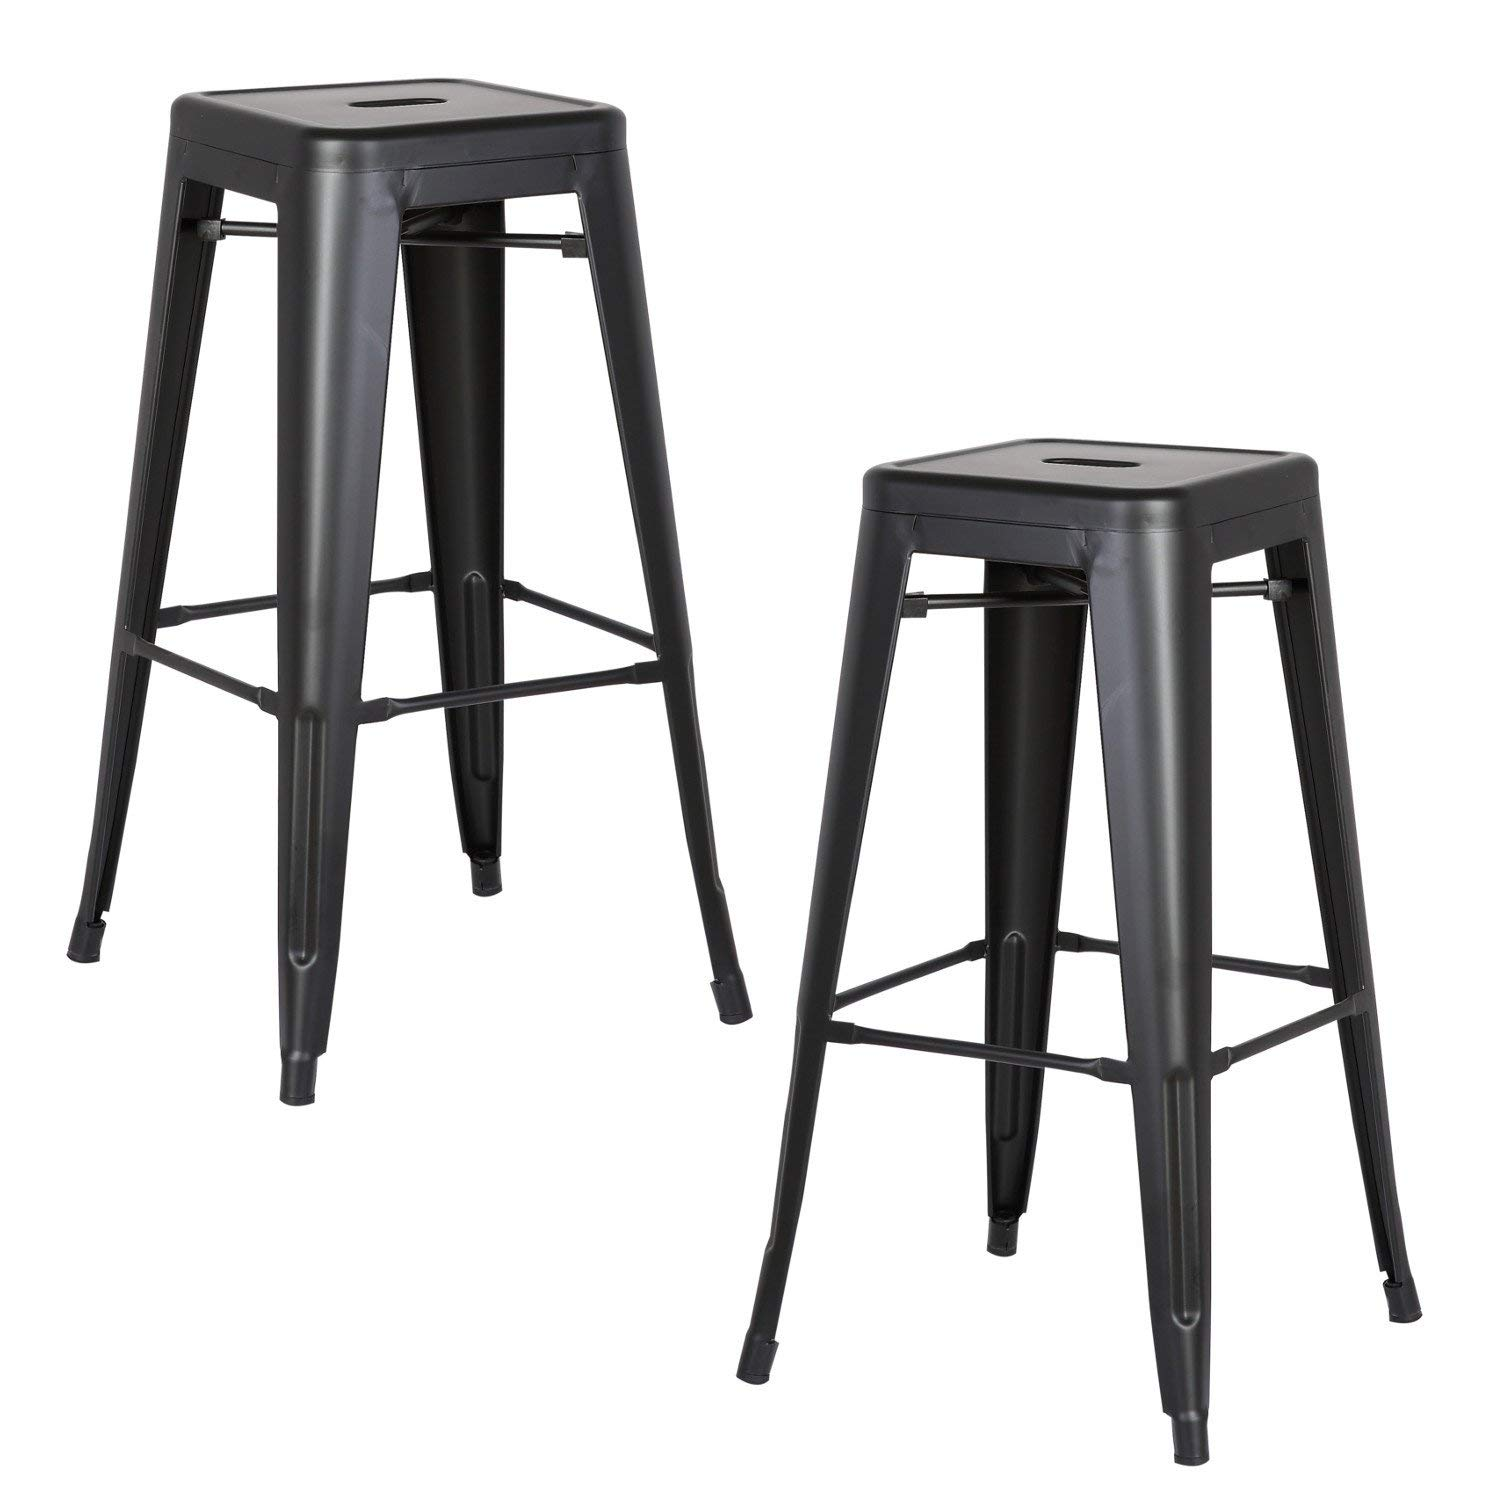 Matte Black 30  Seat AC Pacific Modern Backless Light Weight Industrial Metal Barstool 4 Leg Design, 30  Seat Bar Stools (Set of 2), Distressed White Finish